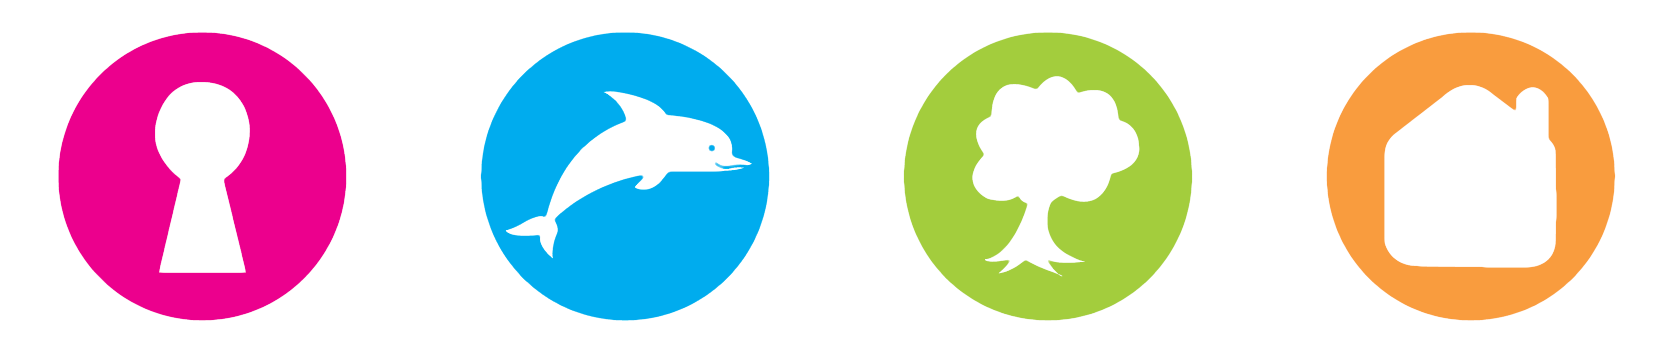 Dolphin clipart dotted animal. Properties for rent rockingham